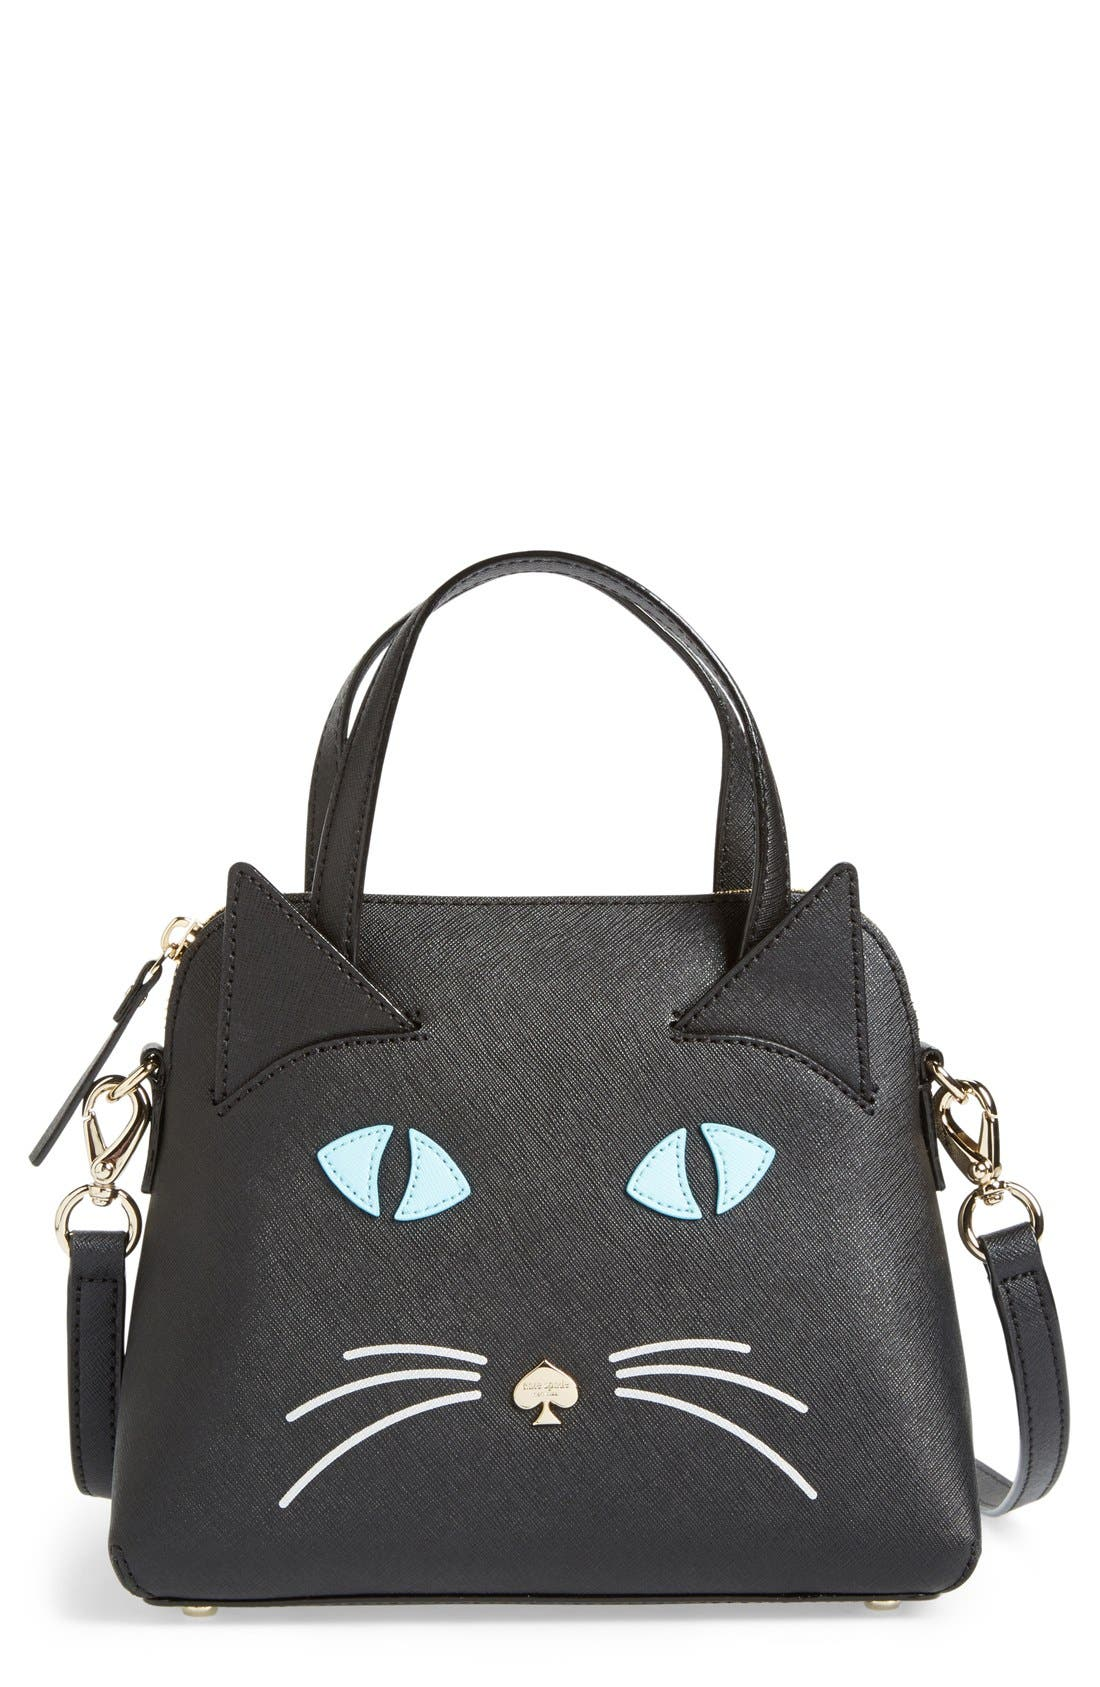 Alternate Image 1 Selected - kate spade new york 'cat's meow - small maise' satchel